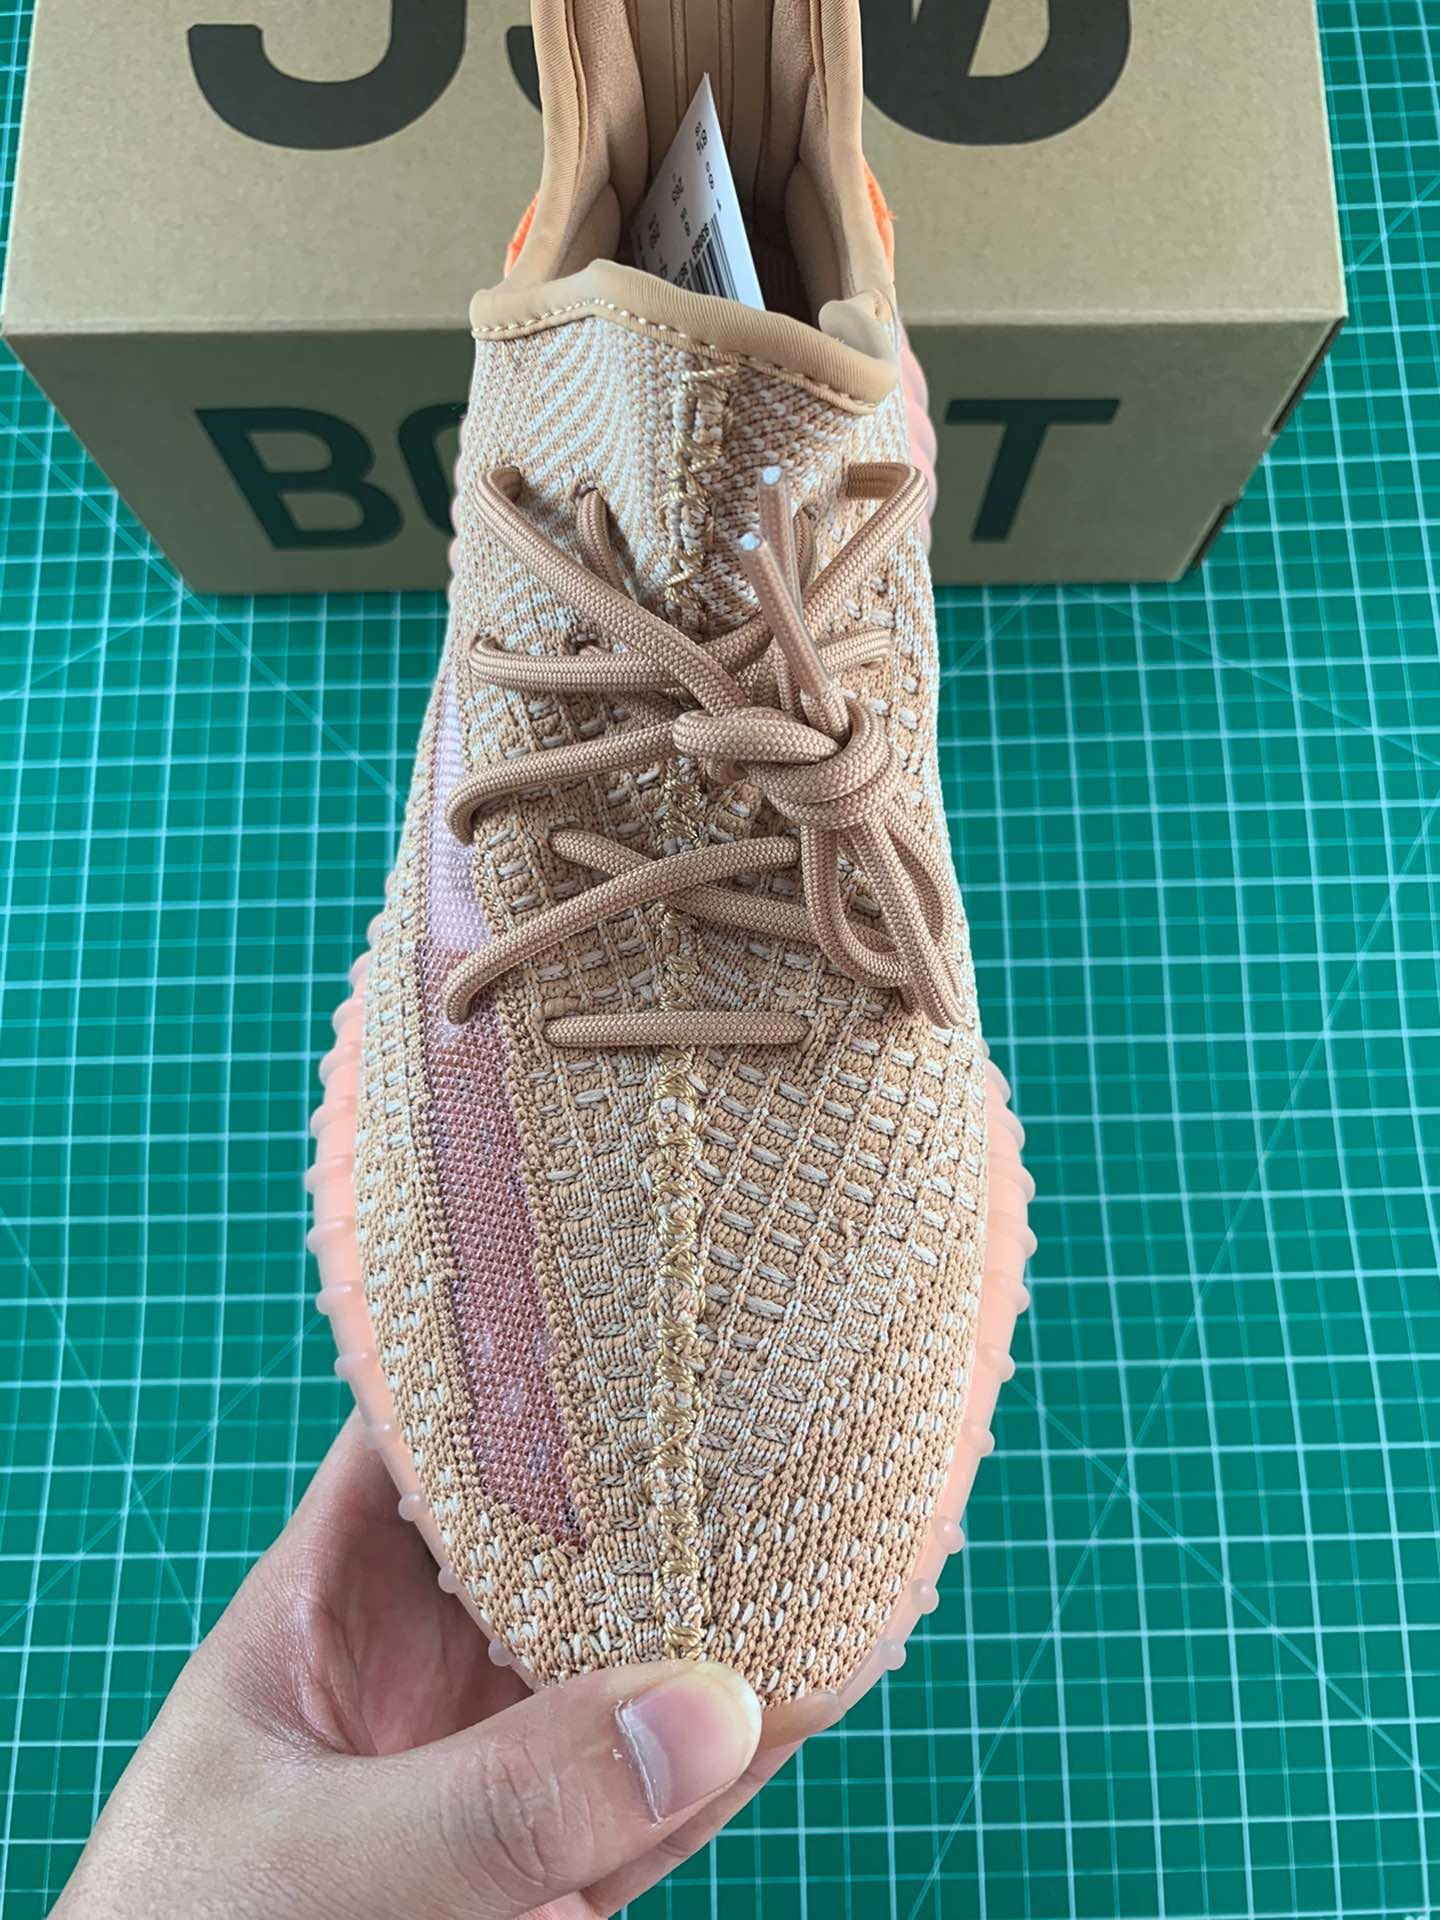 Cheap 2020 cheap Adidas yeezy Boost 350 V2 Sneakers Unisex ...